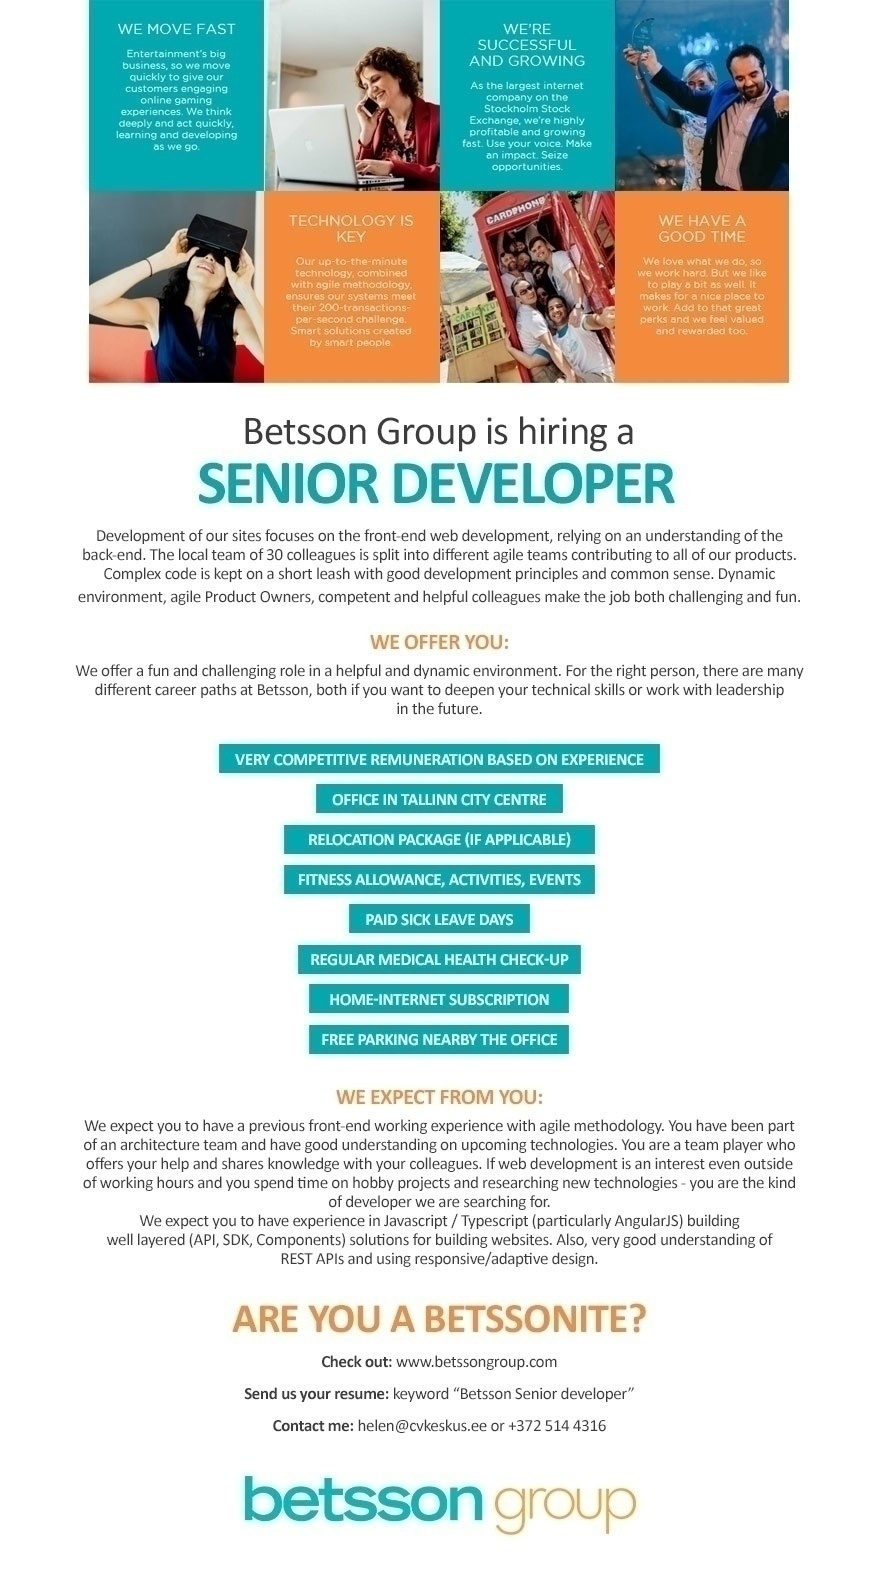 CVKeskus.ee client Senior Developer (front-end)